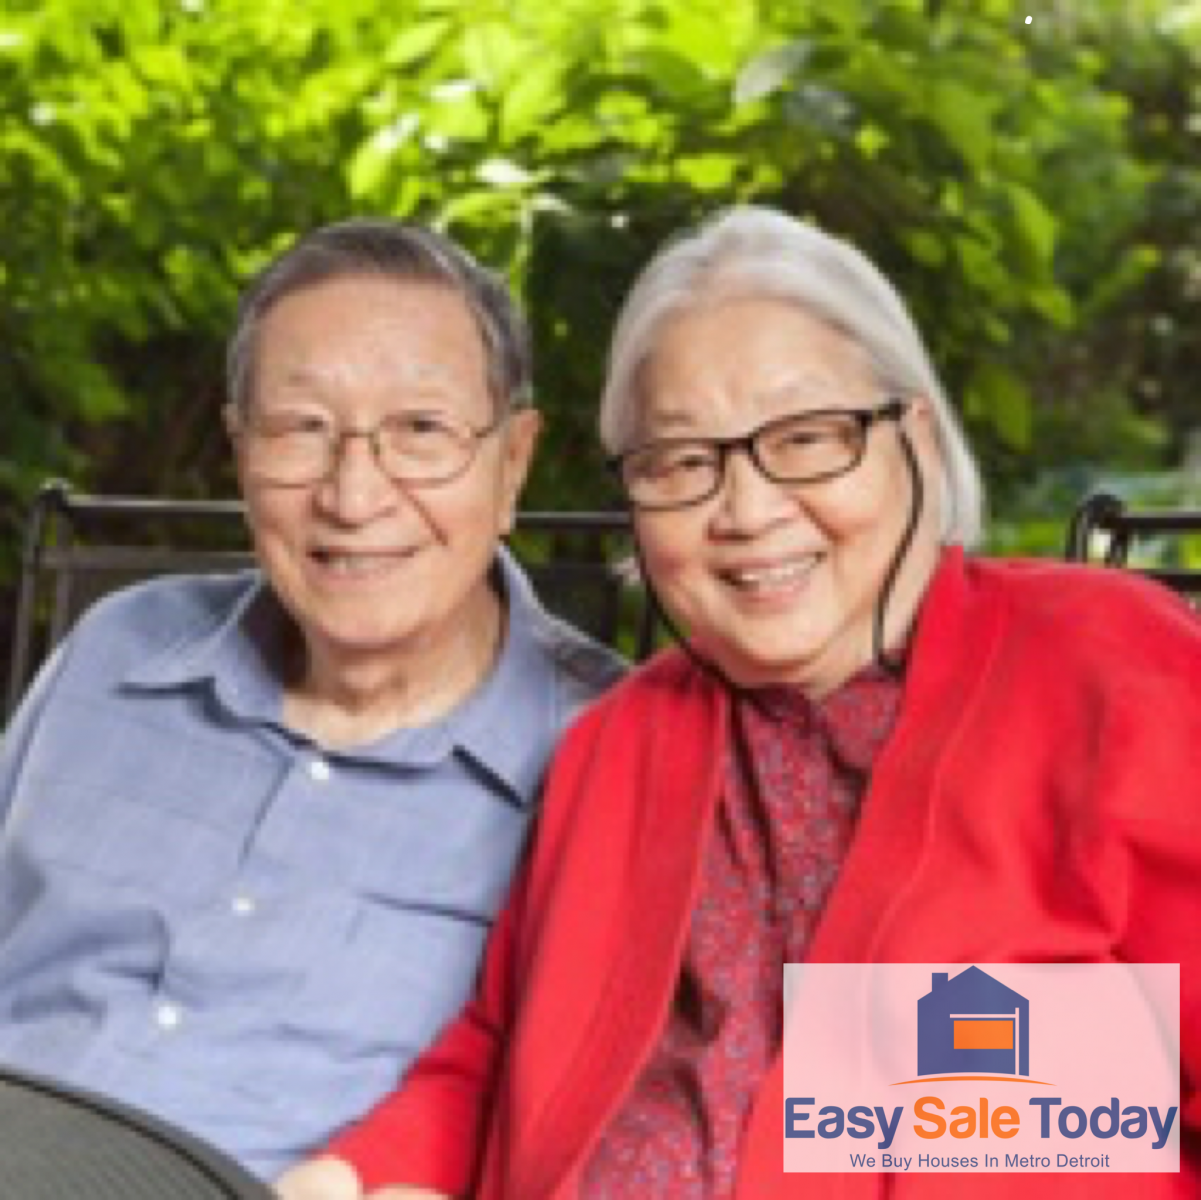 Easy Sale Today - We Buy Houses